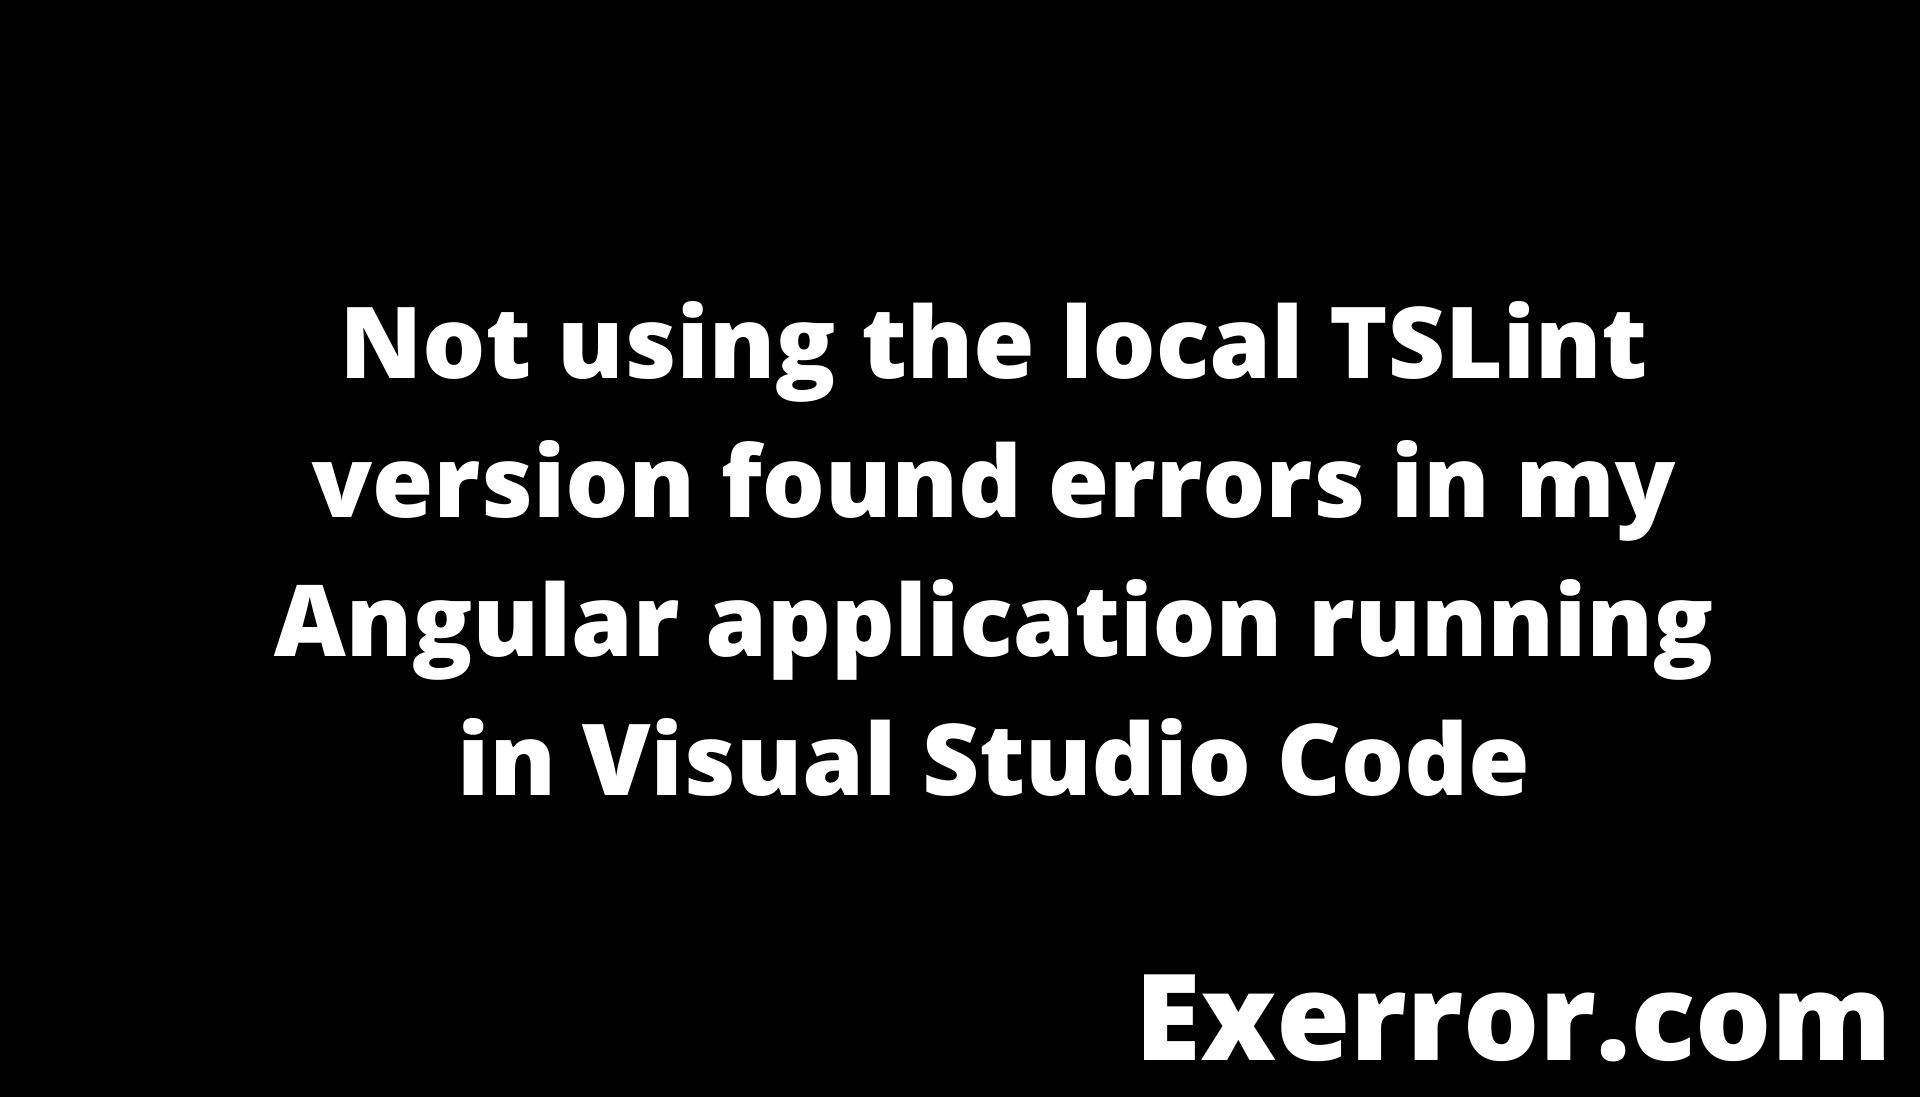 Not using the local TSLint version found errors in my Angular application running in Visual Studio Code